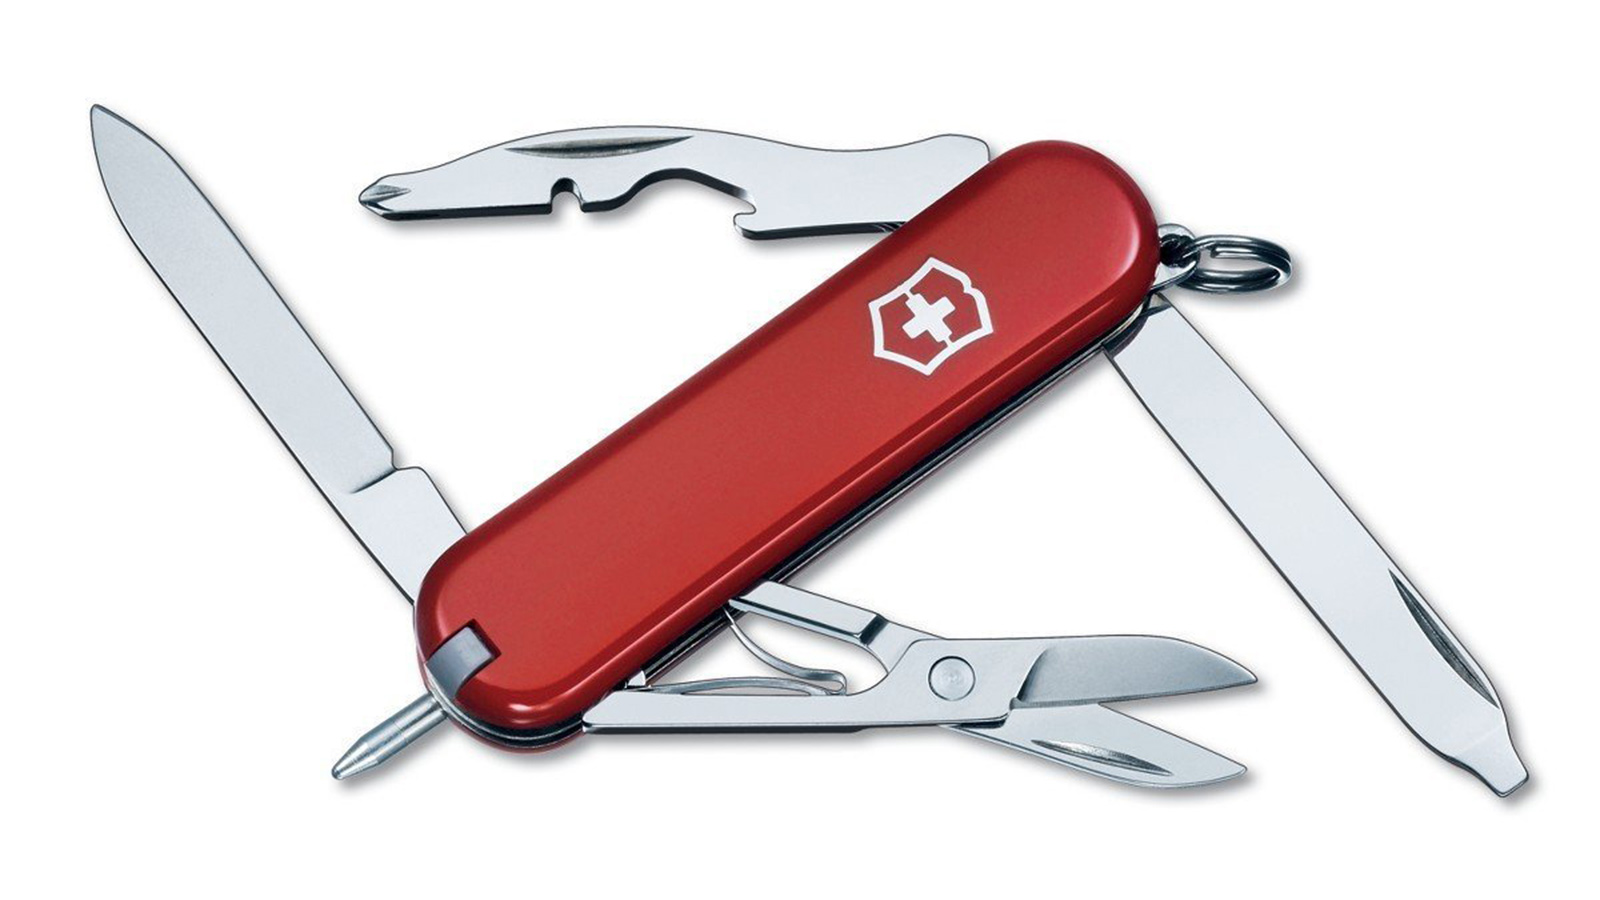 Victorinox Manager Swiss Army Knife Multi-Tool | the best edc pocket tool